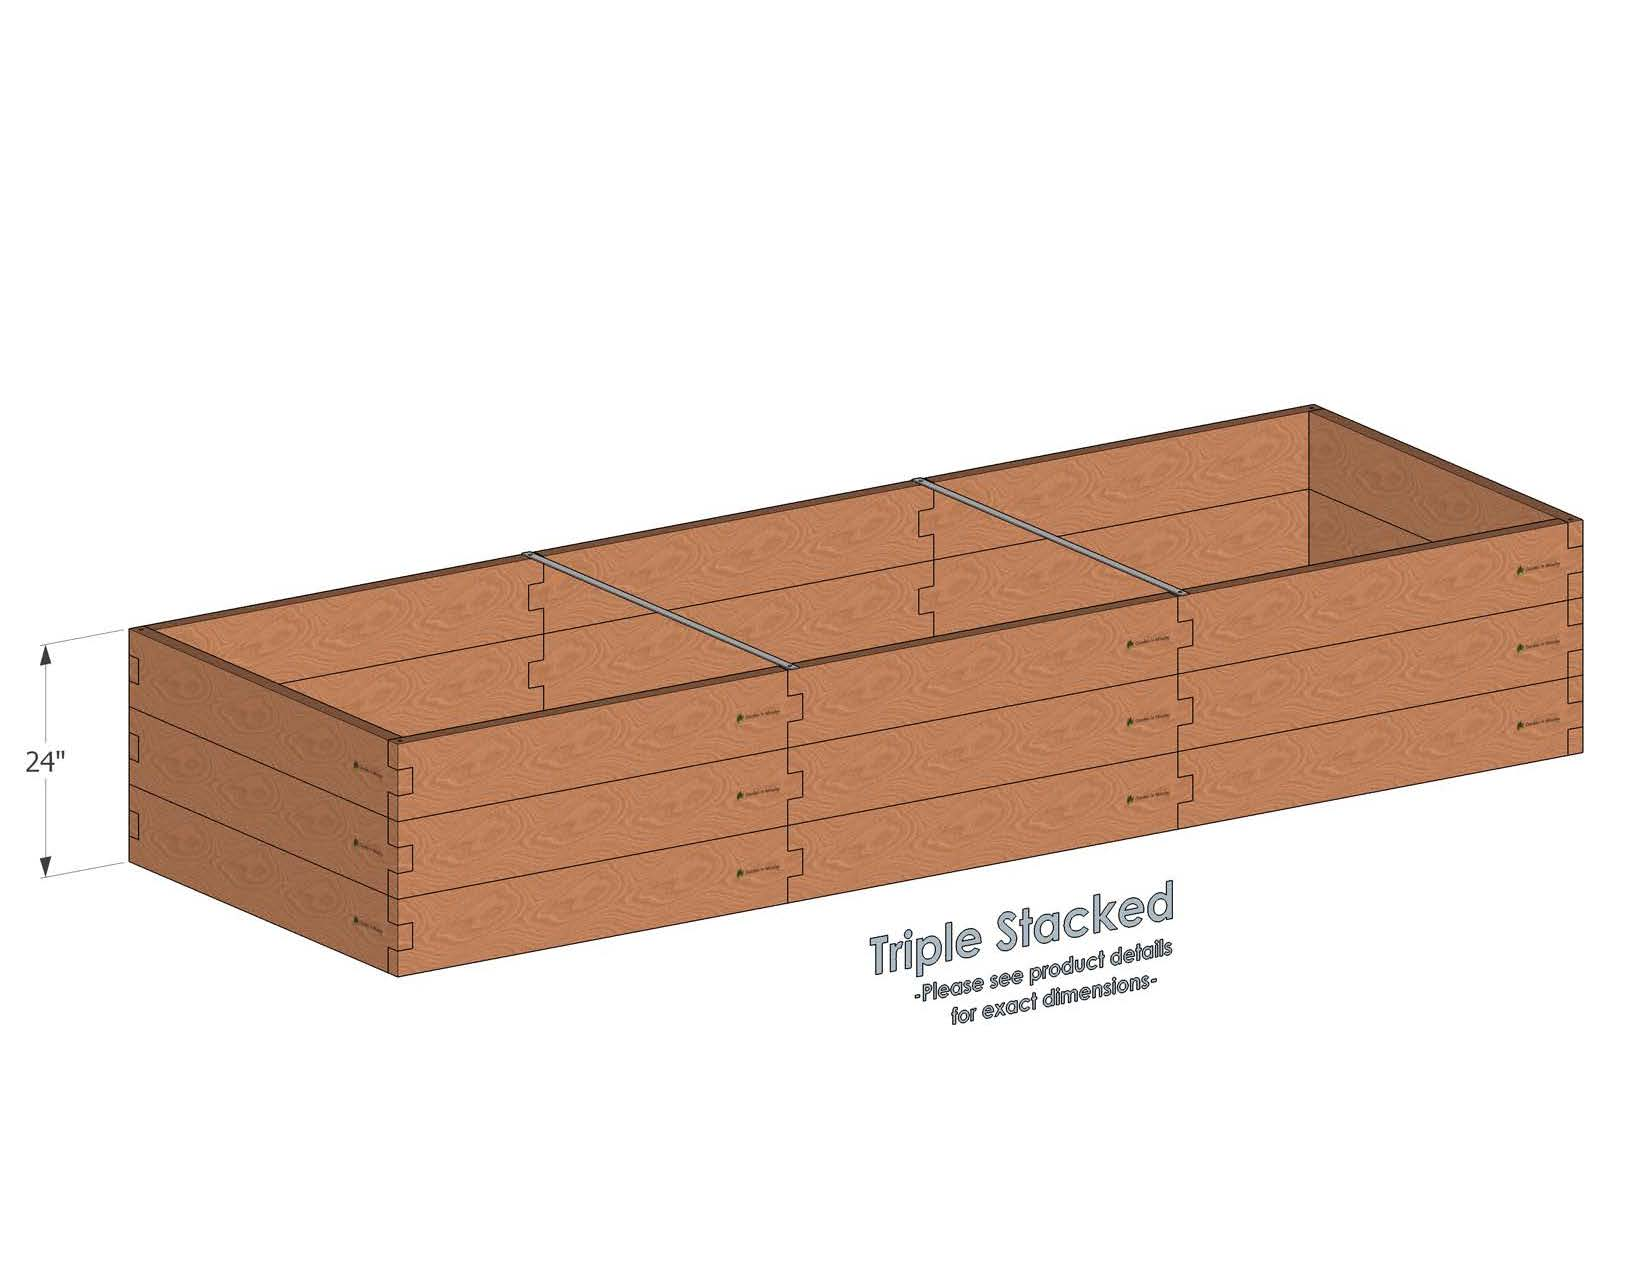 Alternate Layout: 4x12 Cedar Raised Garden Bed Triple Stacked - With stacked 4x12 Garden Beds we include two aluminum cross strap to keep your garden bed walls perfectly straight.